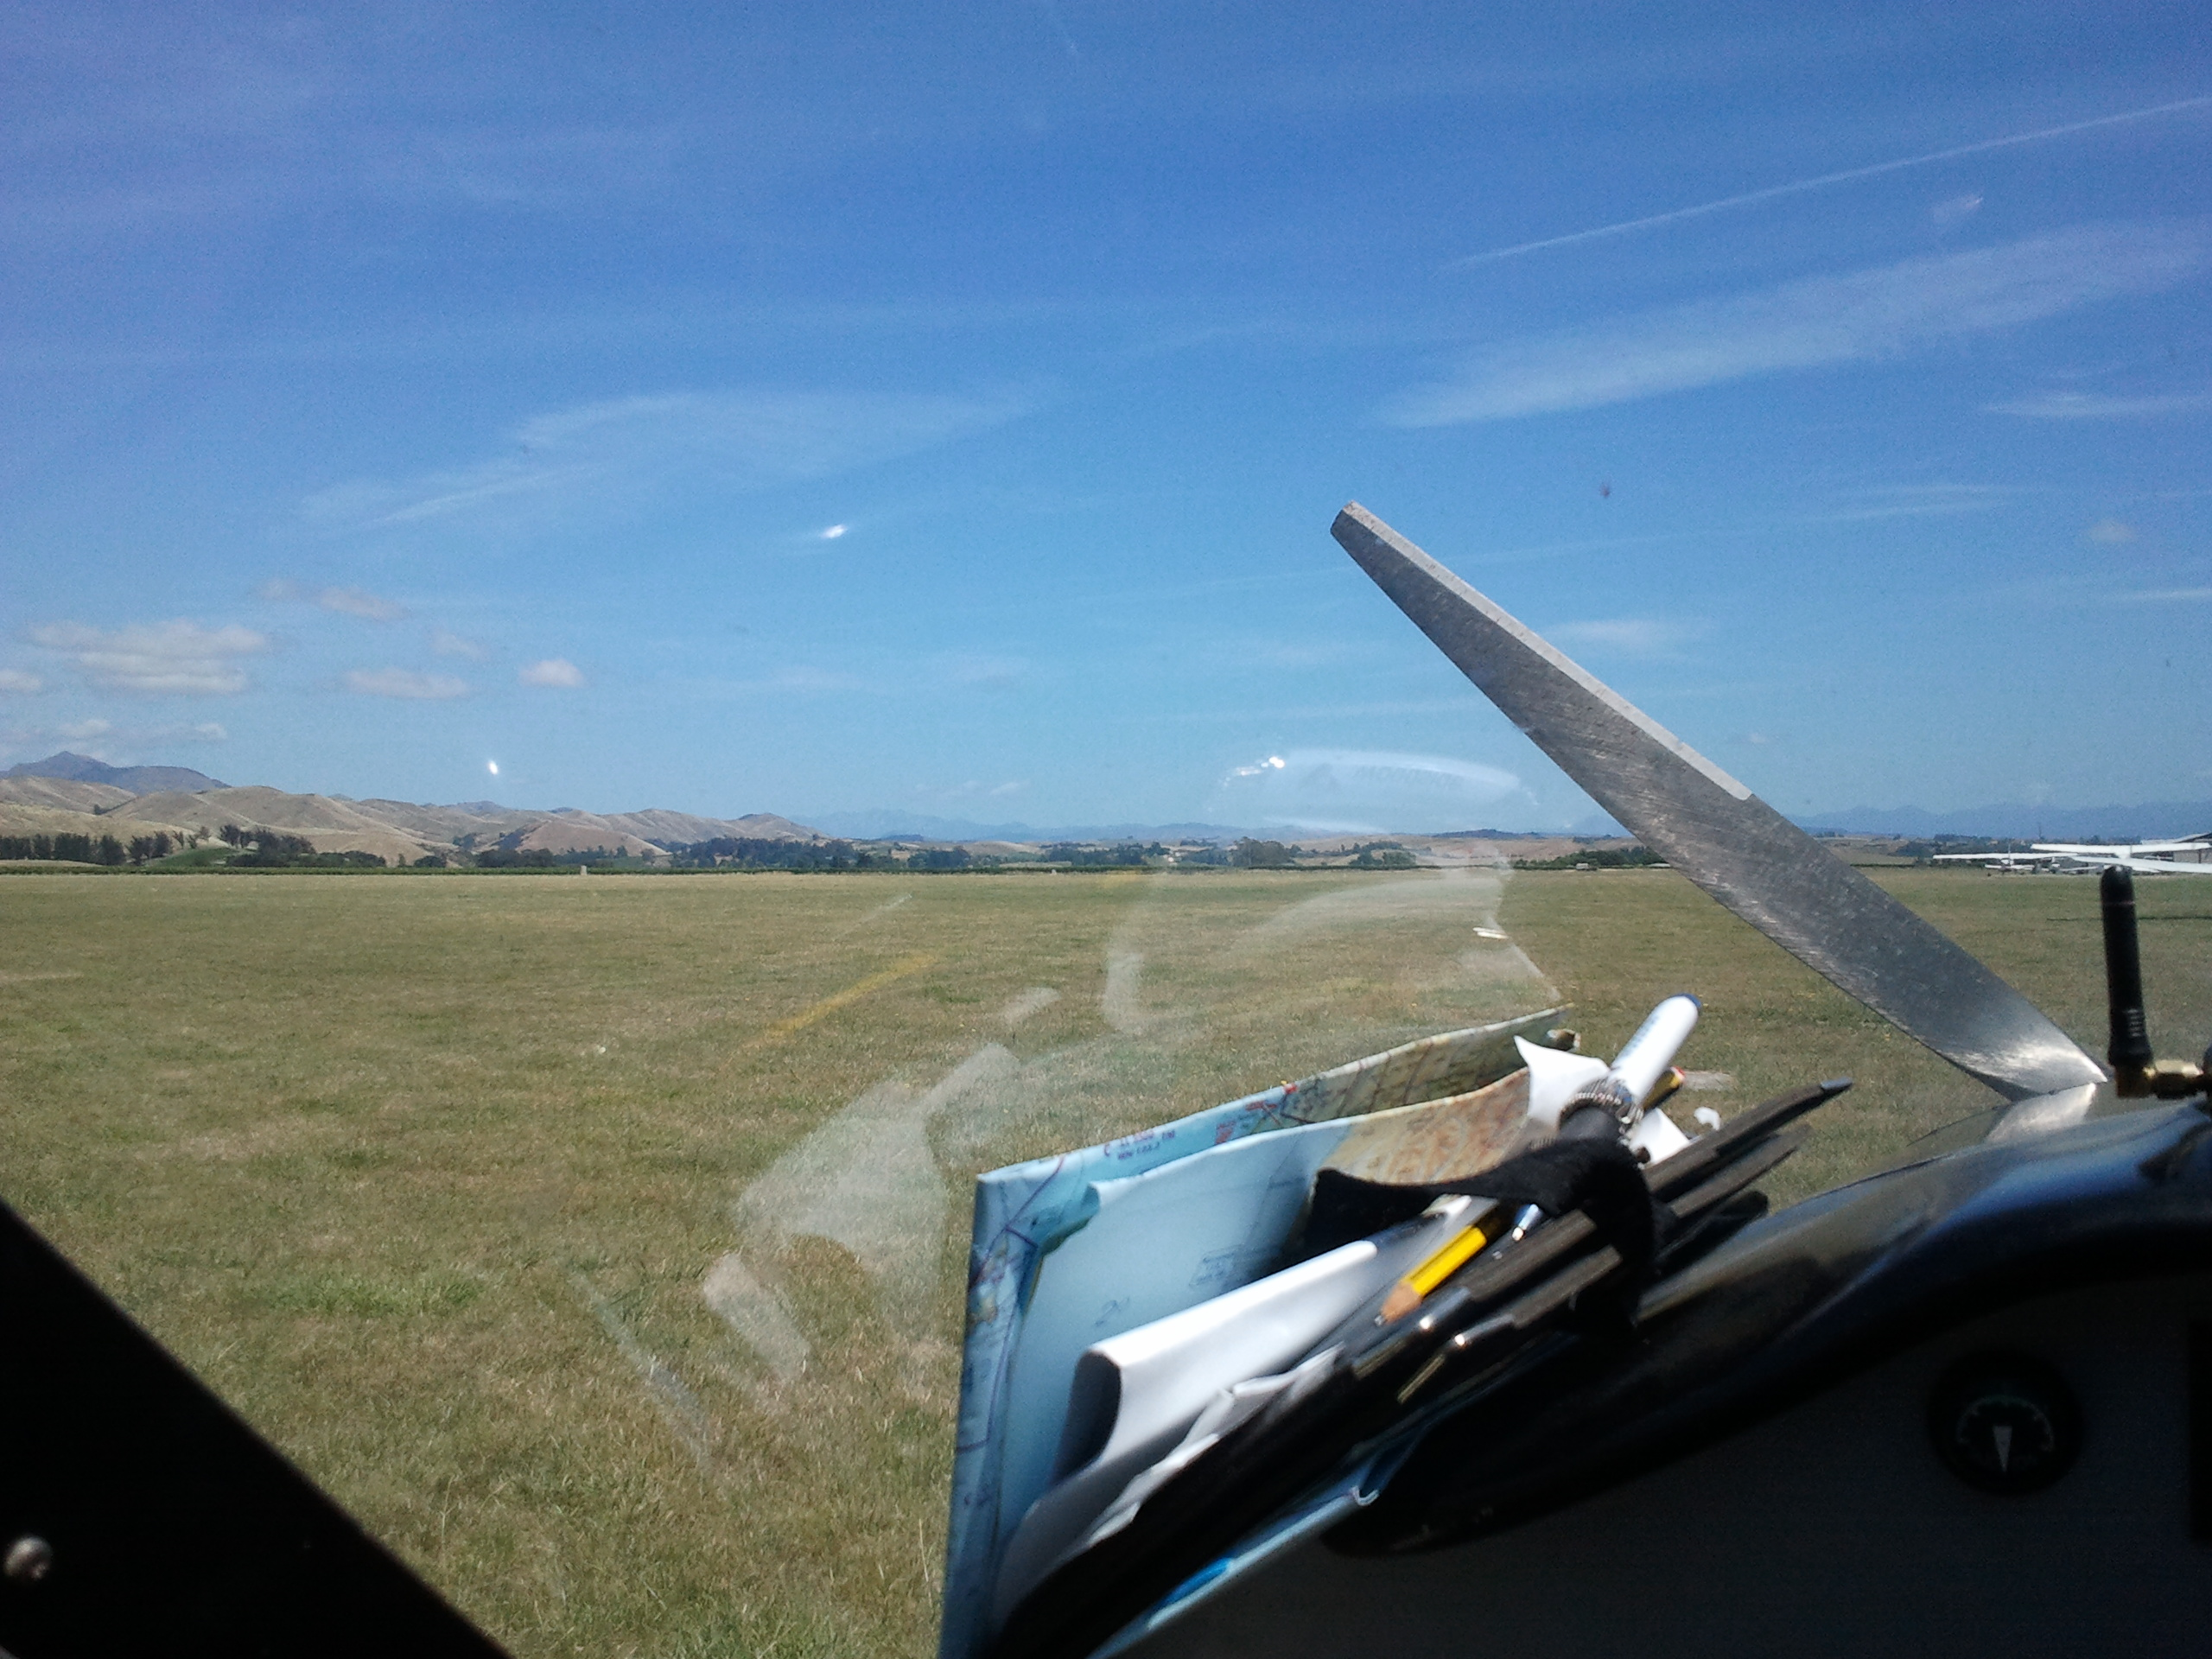 On the ground at Omaka airfield